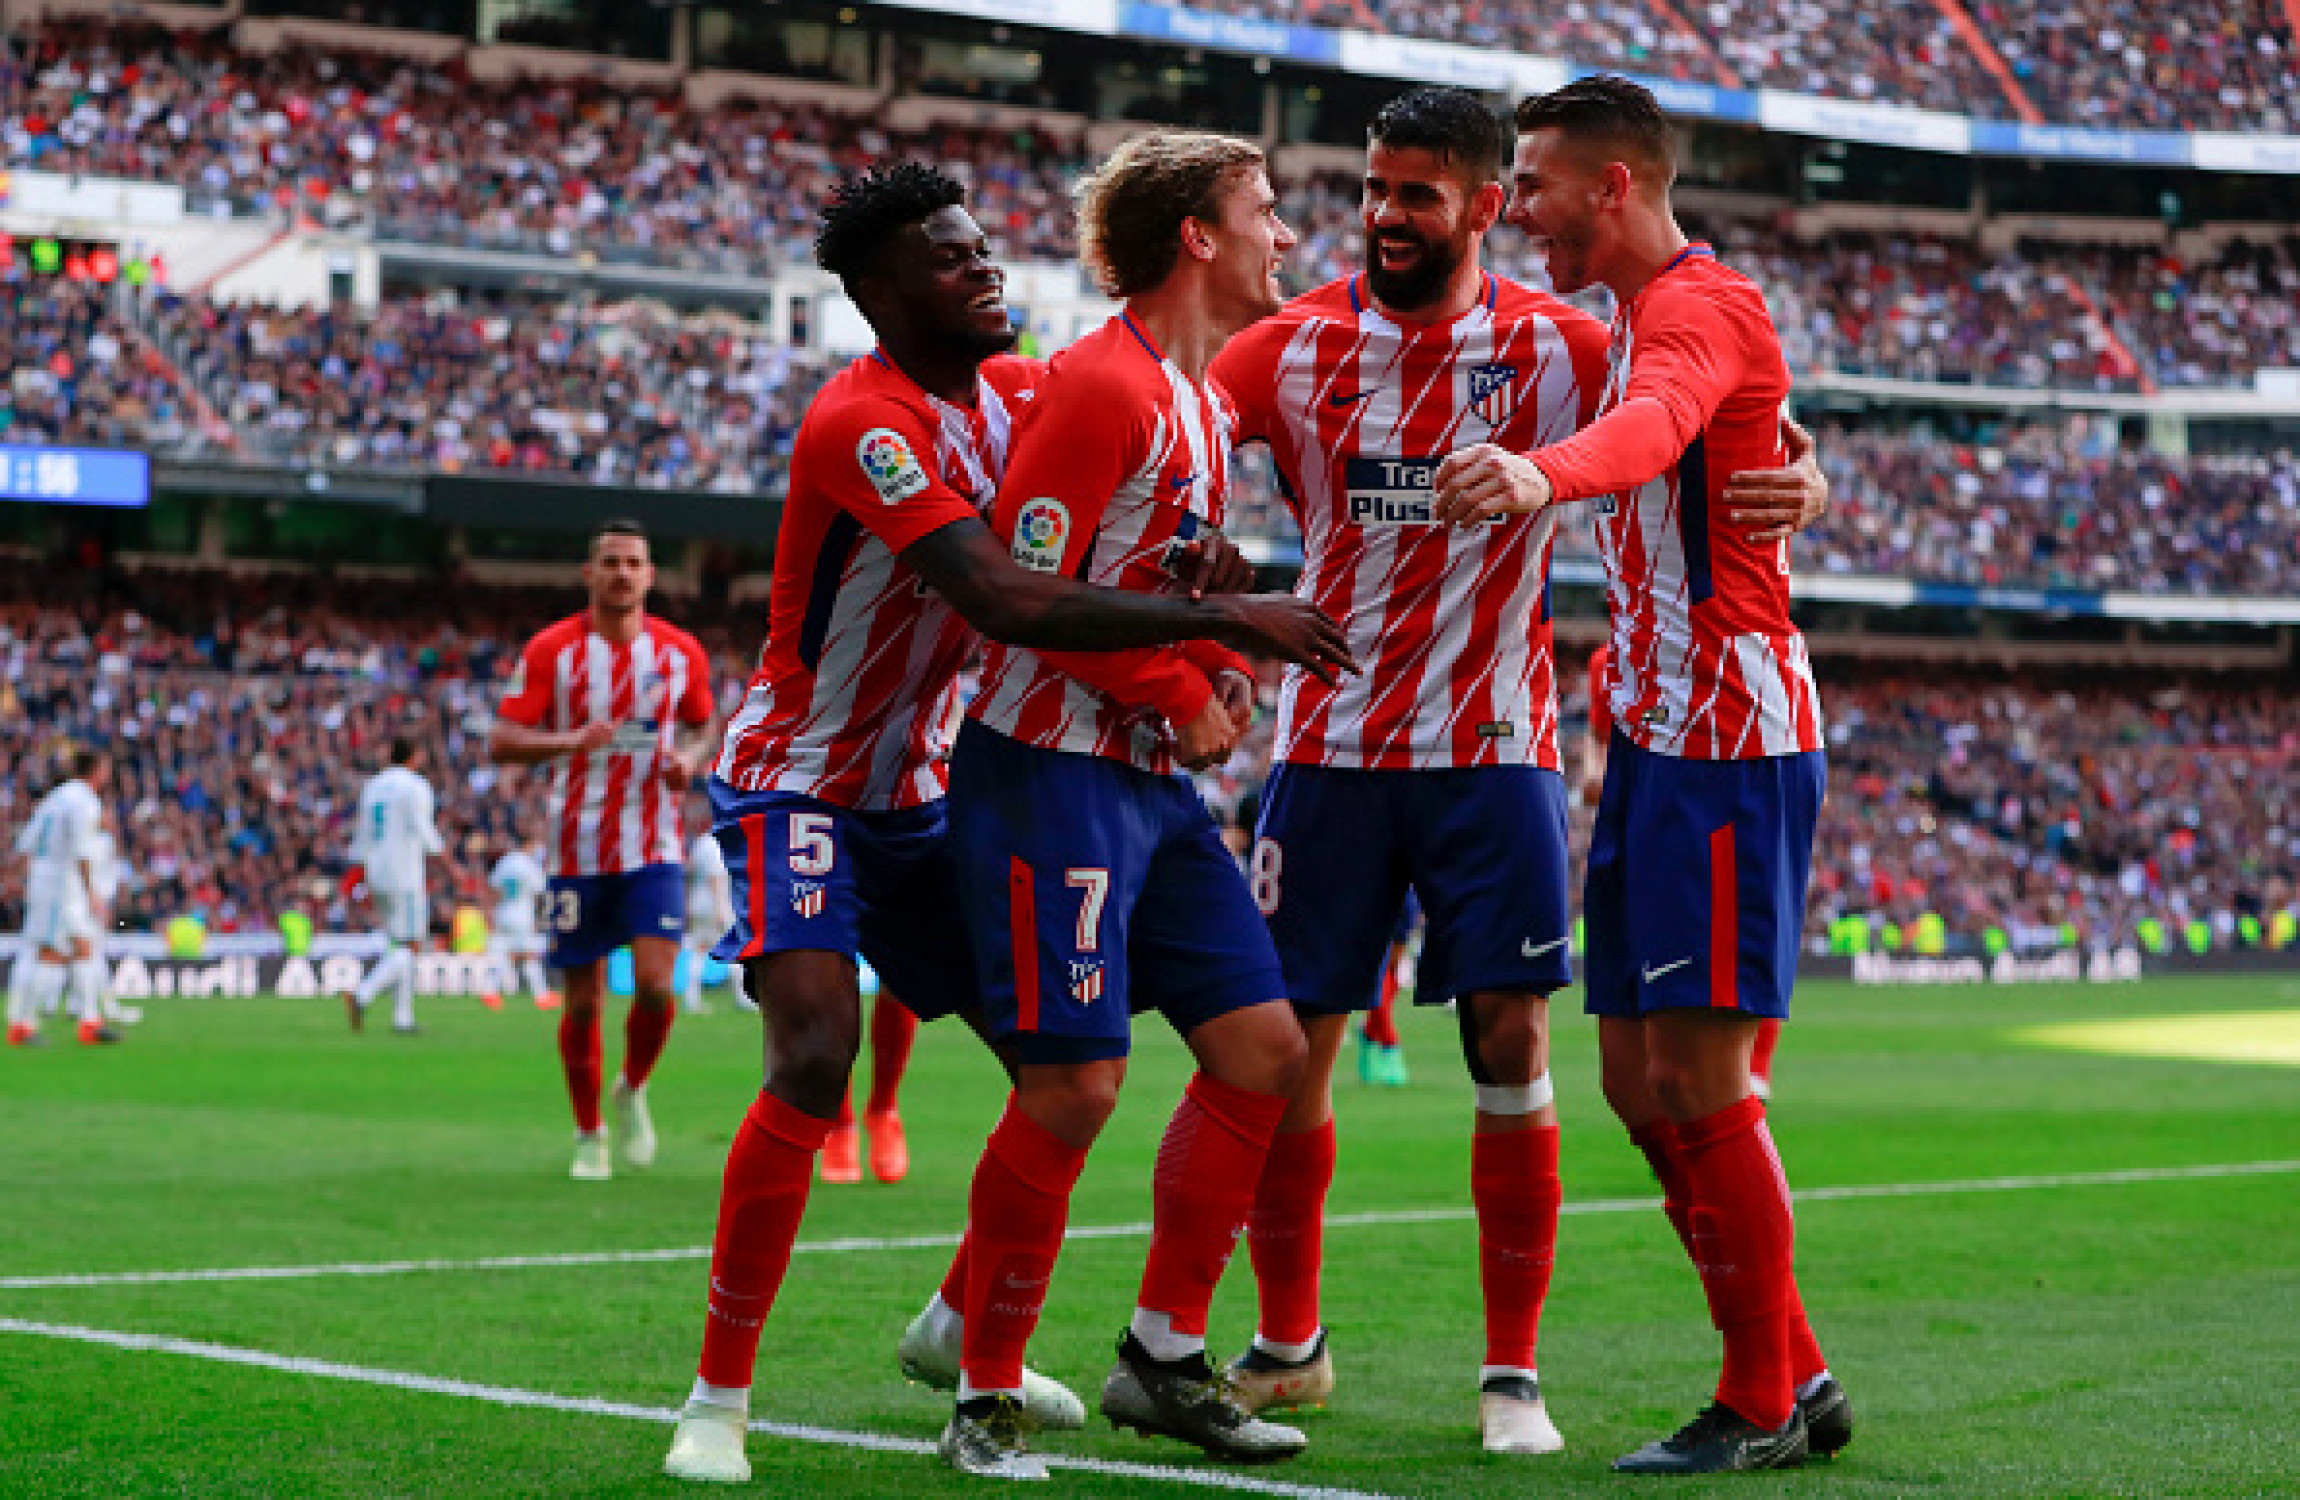 Madrid held to 1-1 draw by Atletico